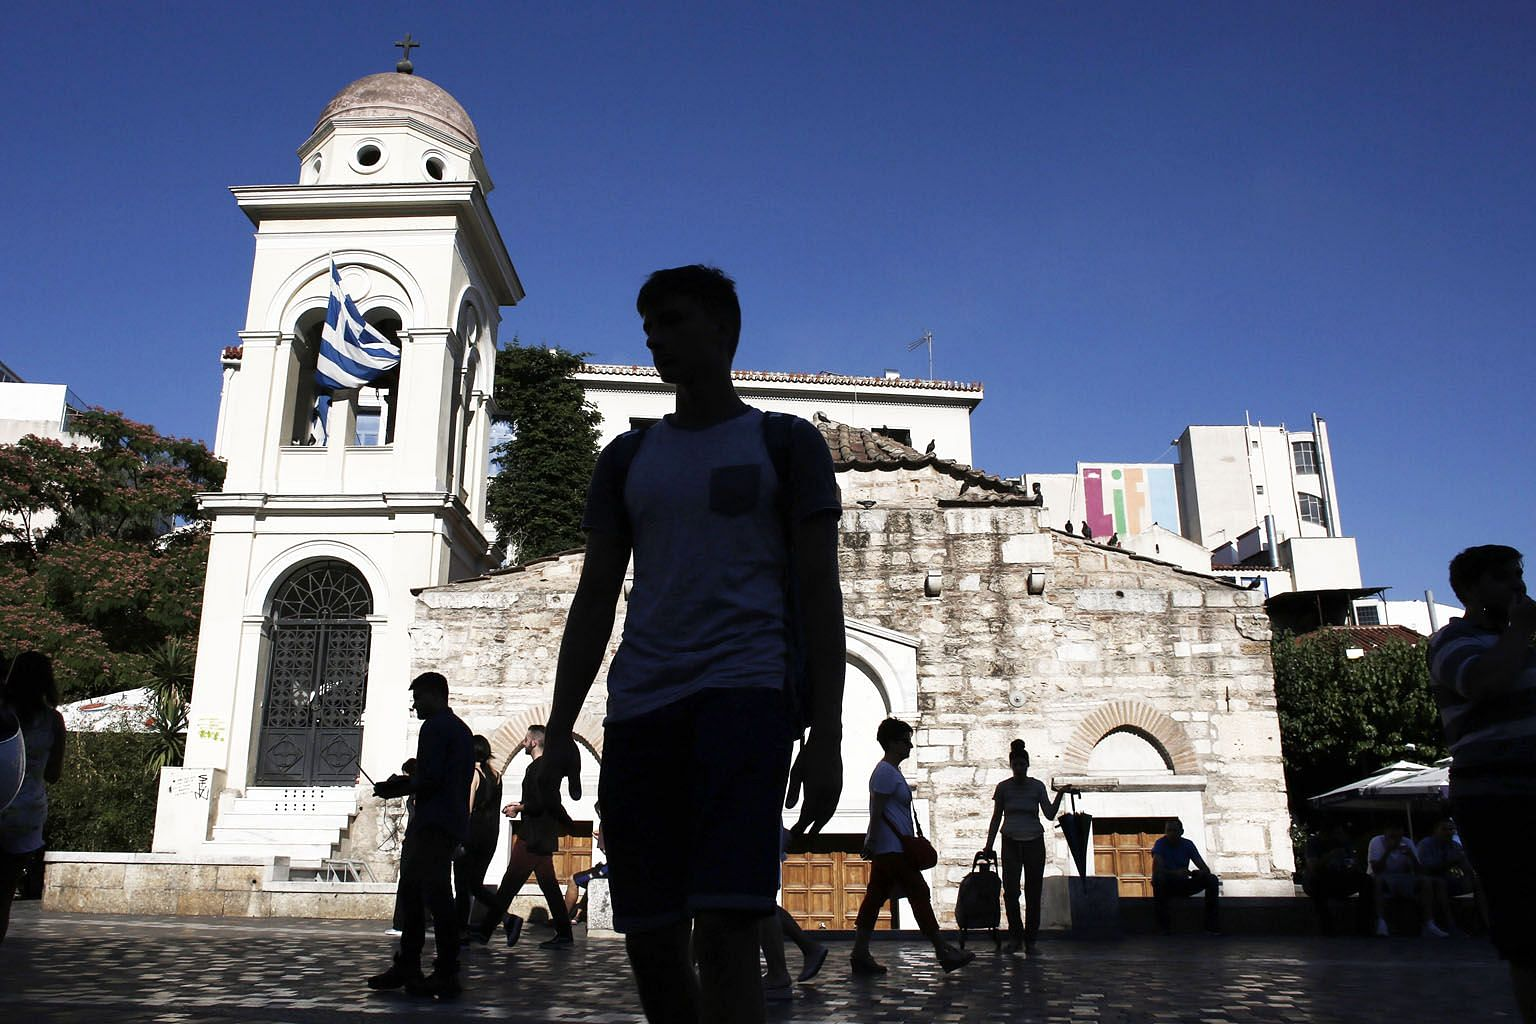 Greece's creditors on Thursday agreed to release new loans for Athens, capping a key chapter of the country's bailout and ending months of uncertainty over whether it could meet large bond payments due next month. But it was not enough to get the IMF